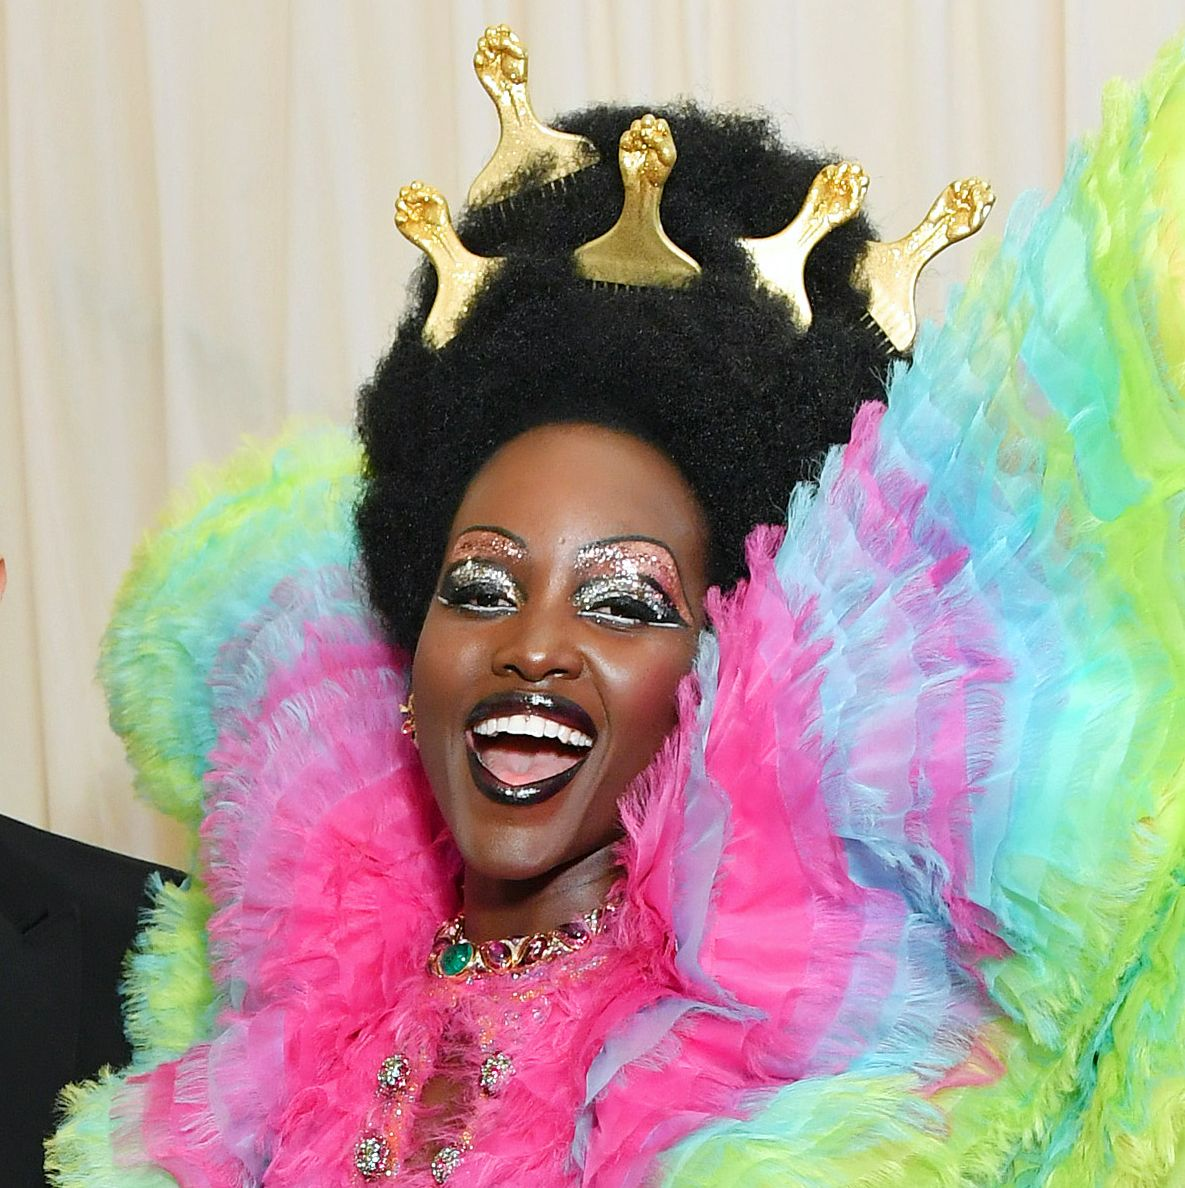 Lupita Nyong'o Nyong'o is a major winner of the night with a high afro decorated with golden picks. Her makeup featured a cut crease, glitter eye look with bold, black lacquer lips.